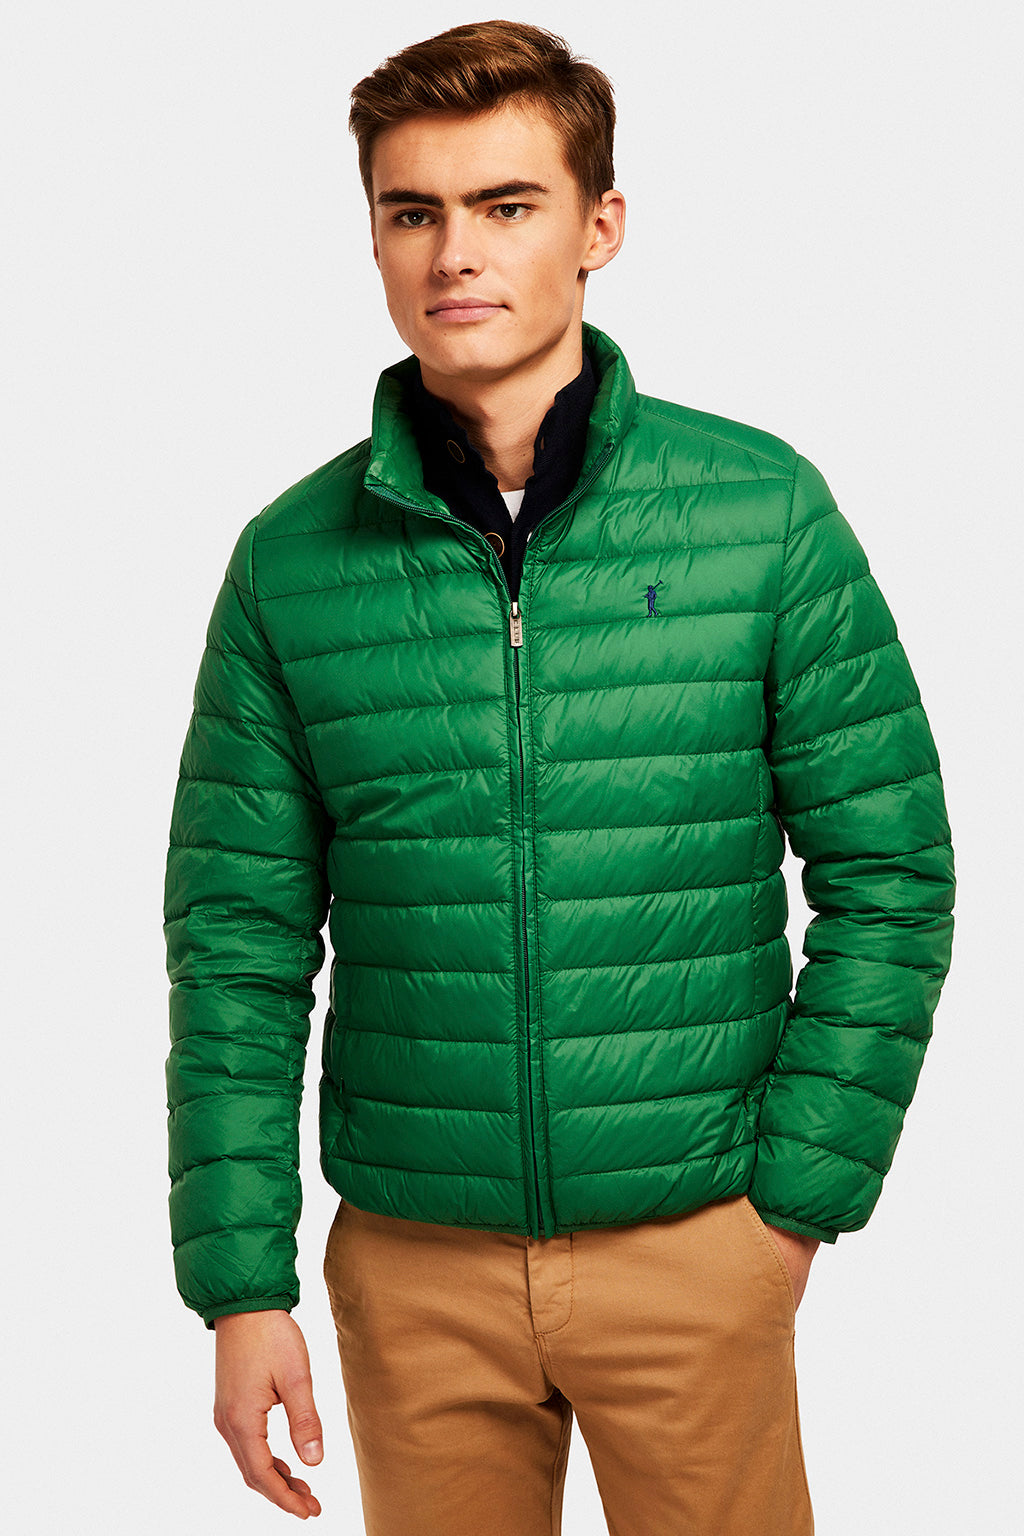 Green Ultralight jacket